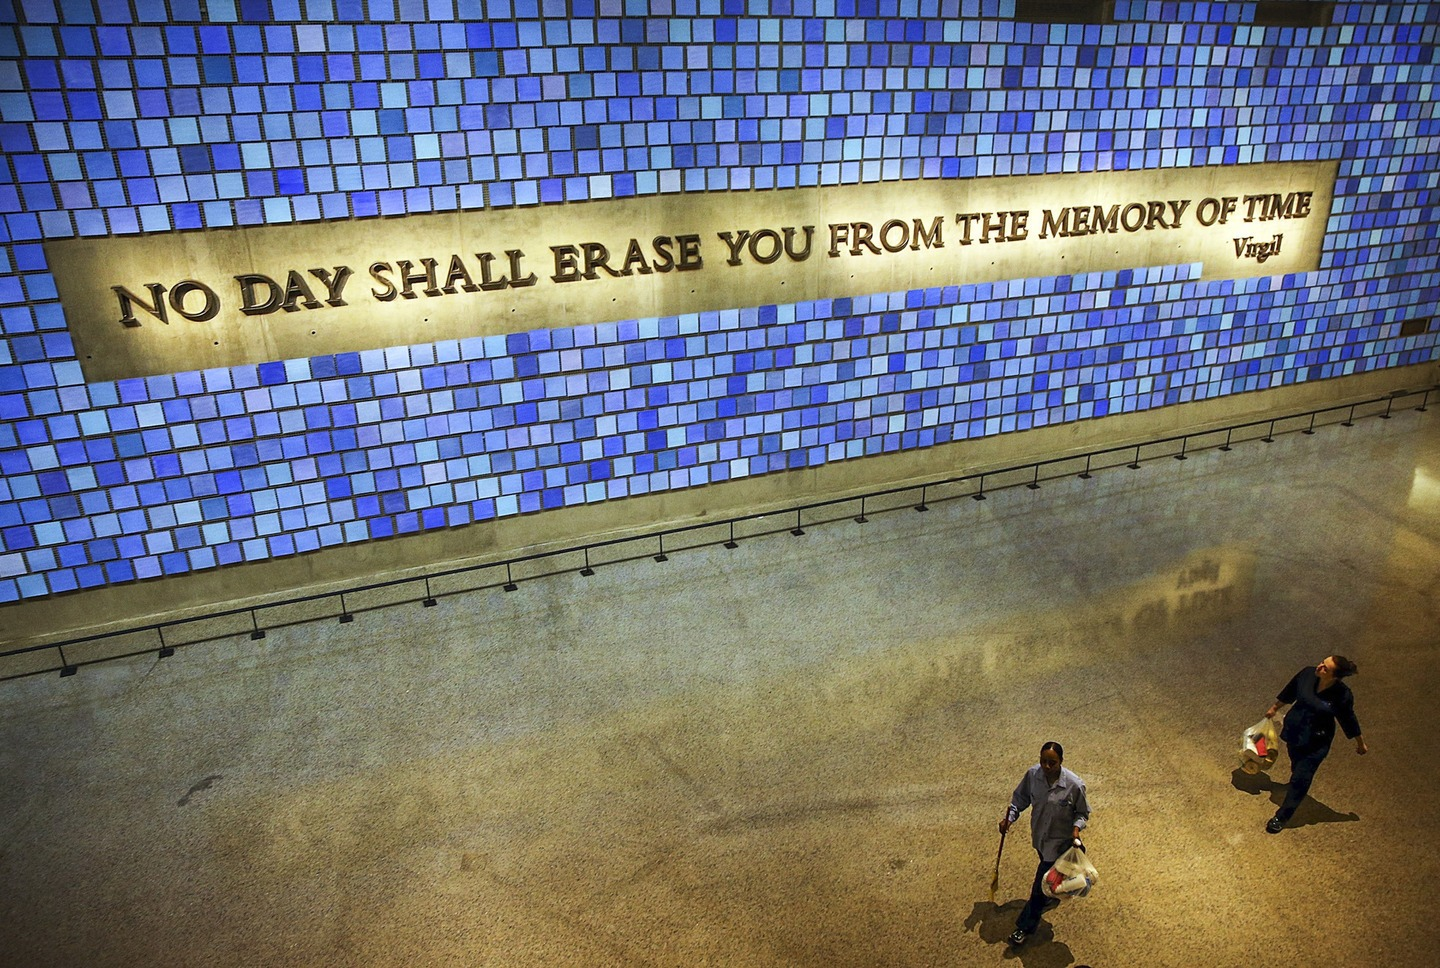 September 11th quotes quotes about september 11th sayings about - September 11th Quotes Quotes About September 11th Sayings About 44